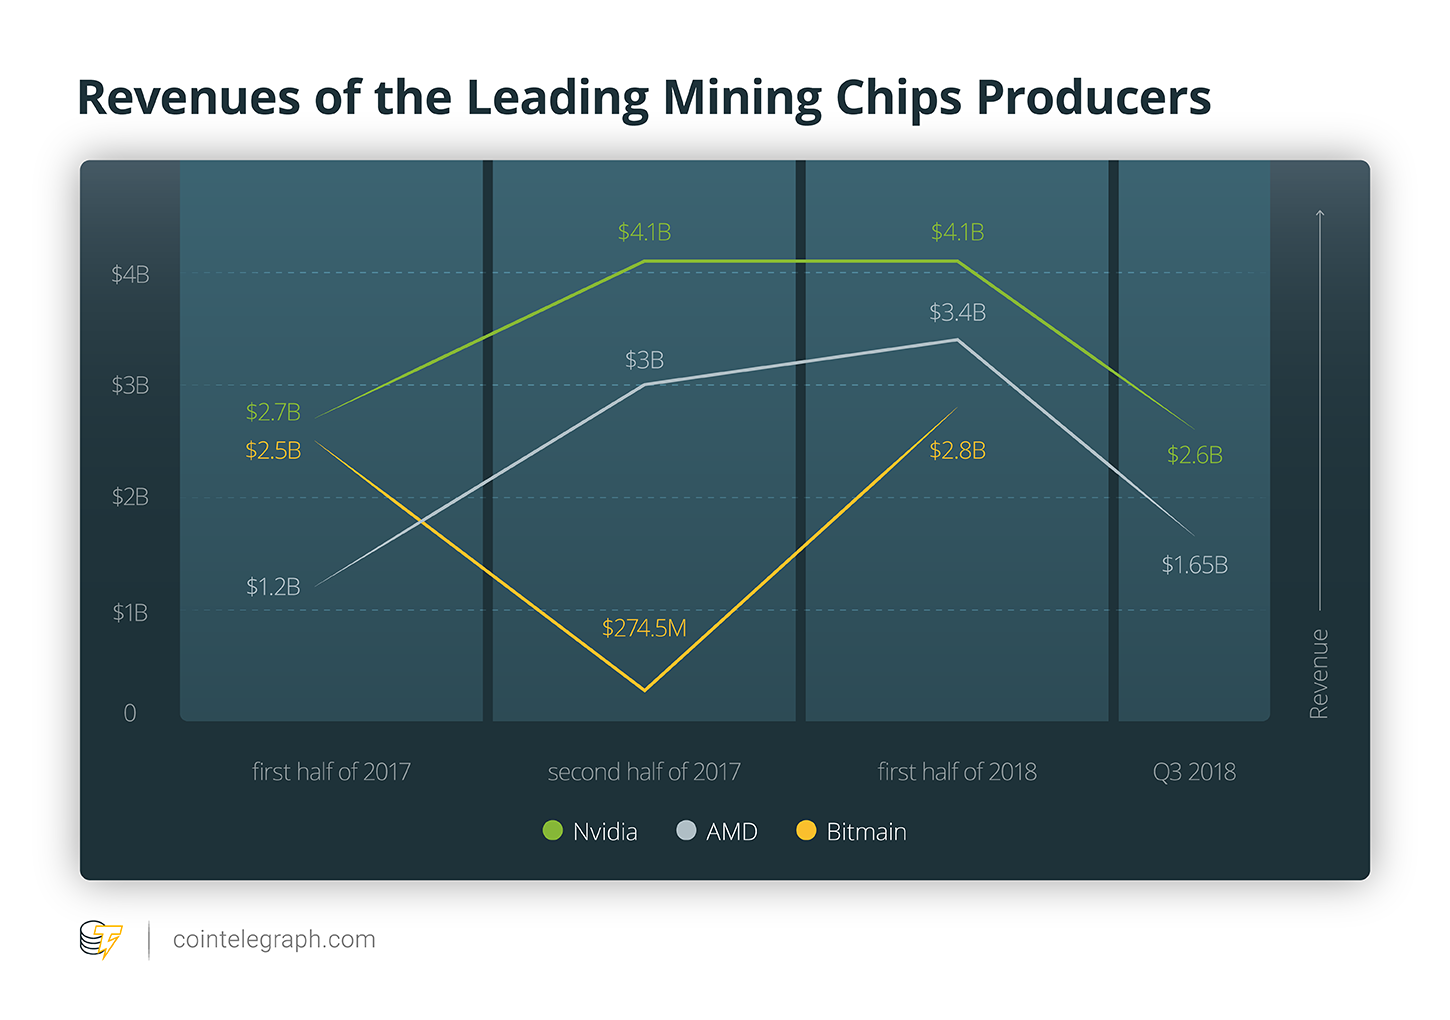 Revenues of the Leading Mining Chips Producers